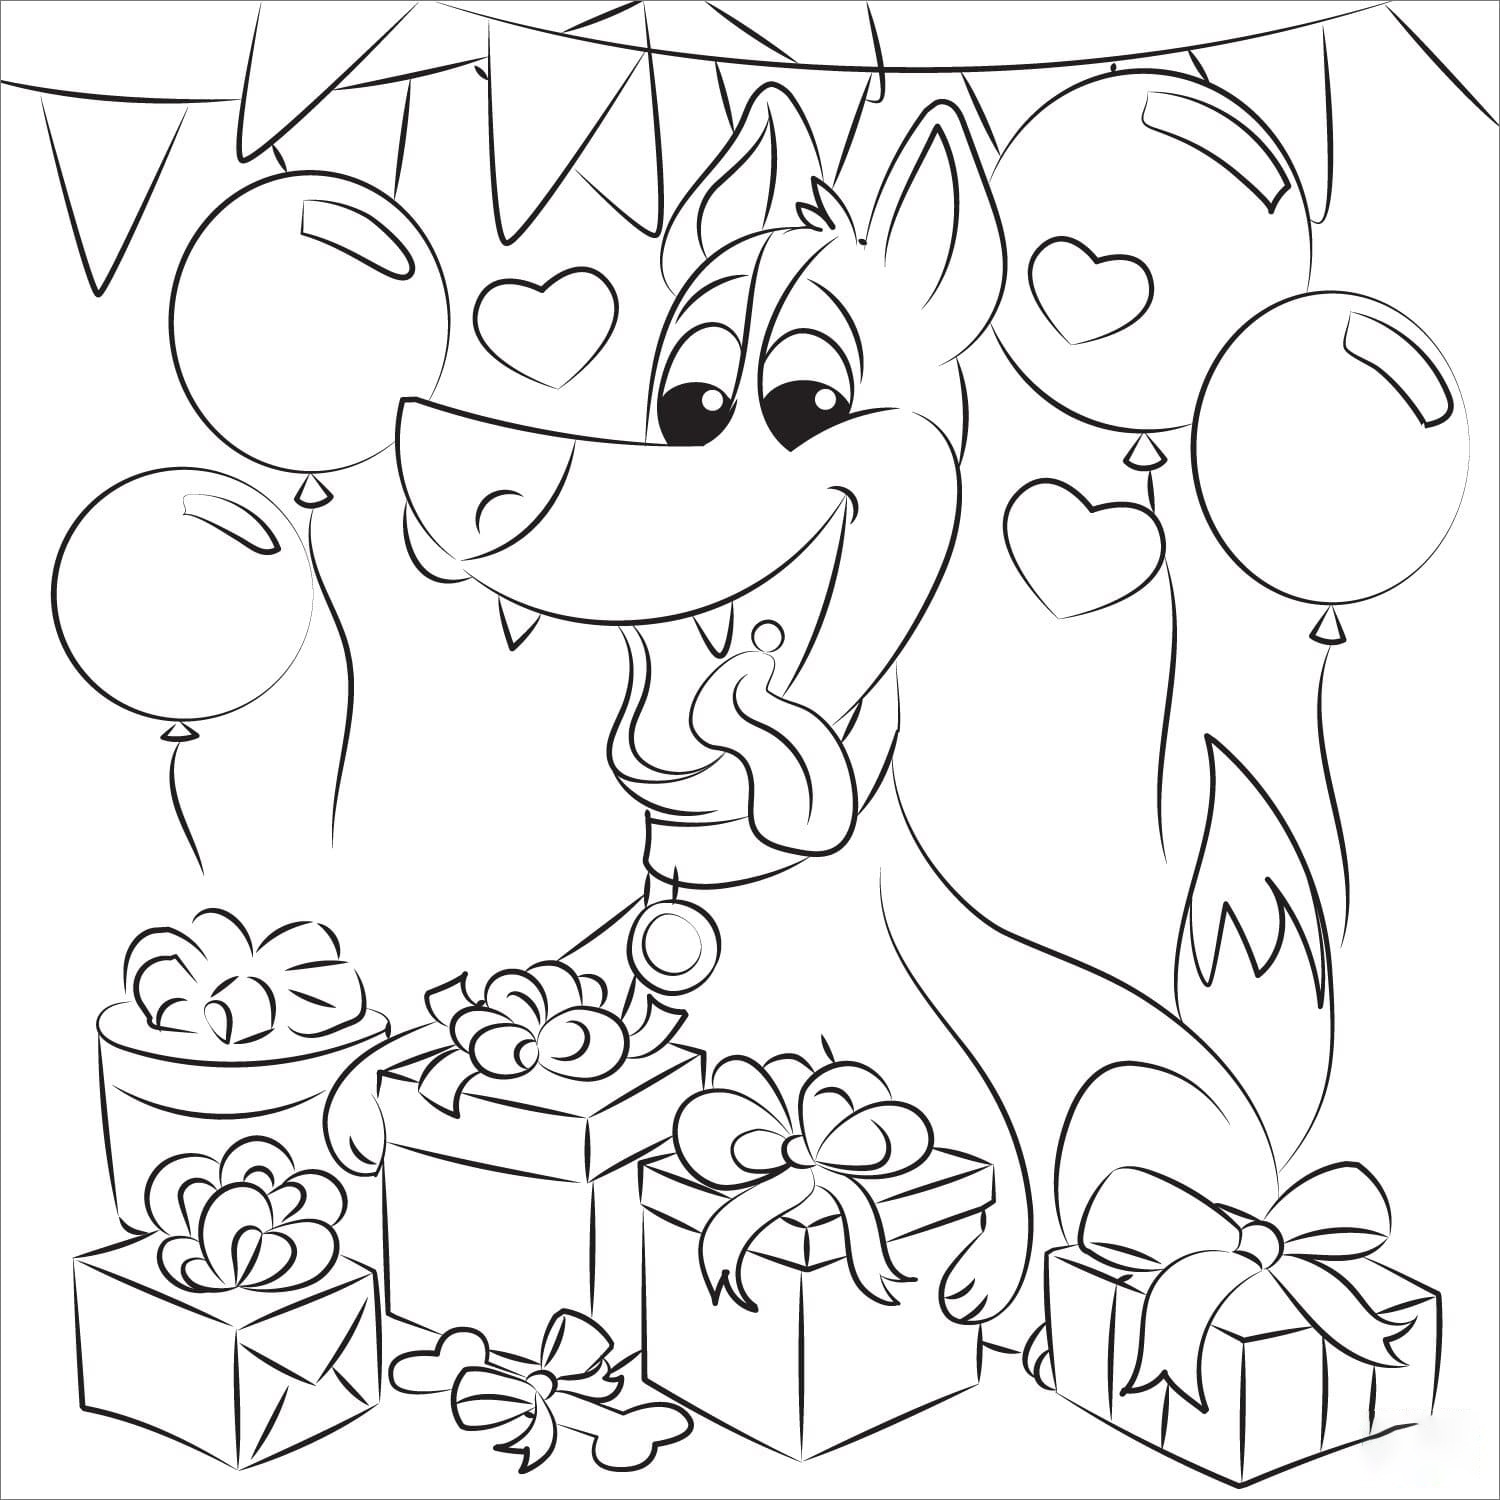 Dogs birthday Coloring Page